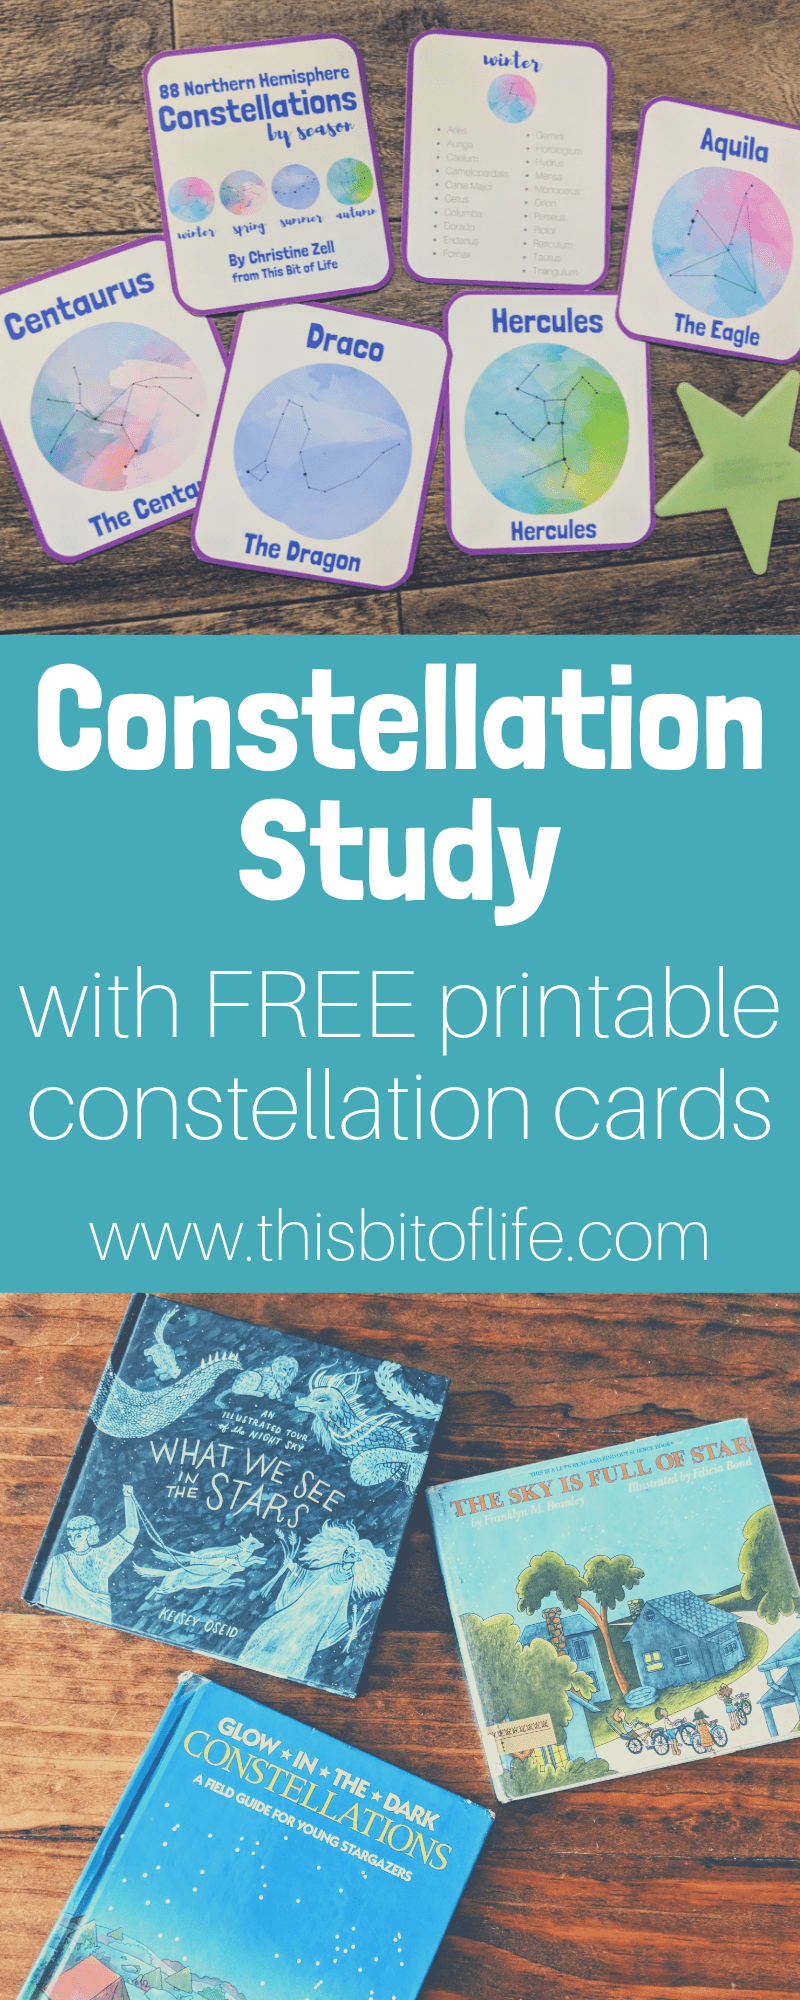 Constellation Study with free printable constellation cards. We studies the constellations in our homeschool and read some wonderful books, worked on handicrafts, and used these free constellation cards printable! #freeprintable #constellations #homeschooling #homeschoolprintable #unitstudy